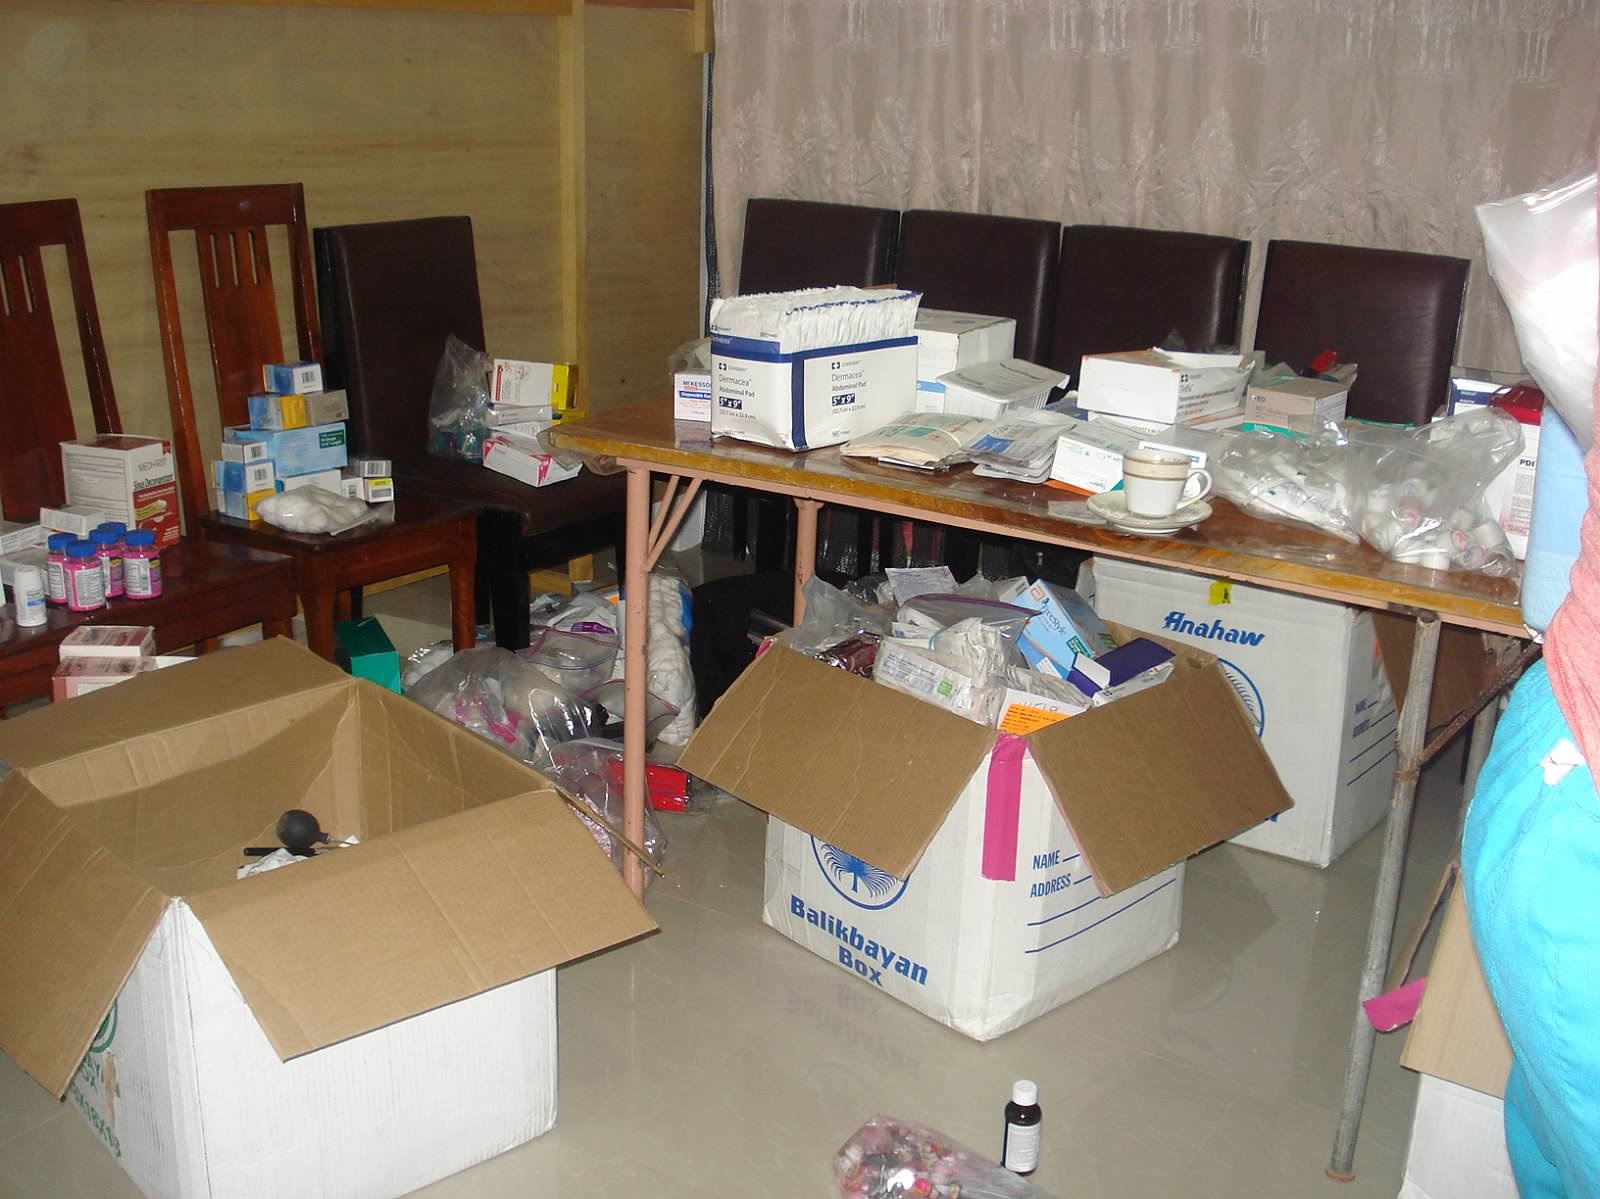 Sorting and packing supplies is a daily project.